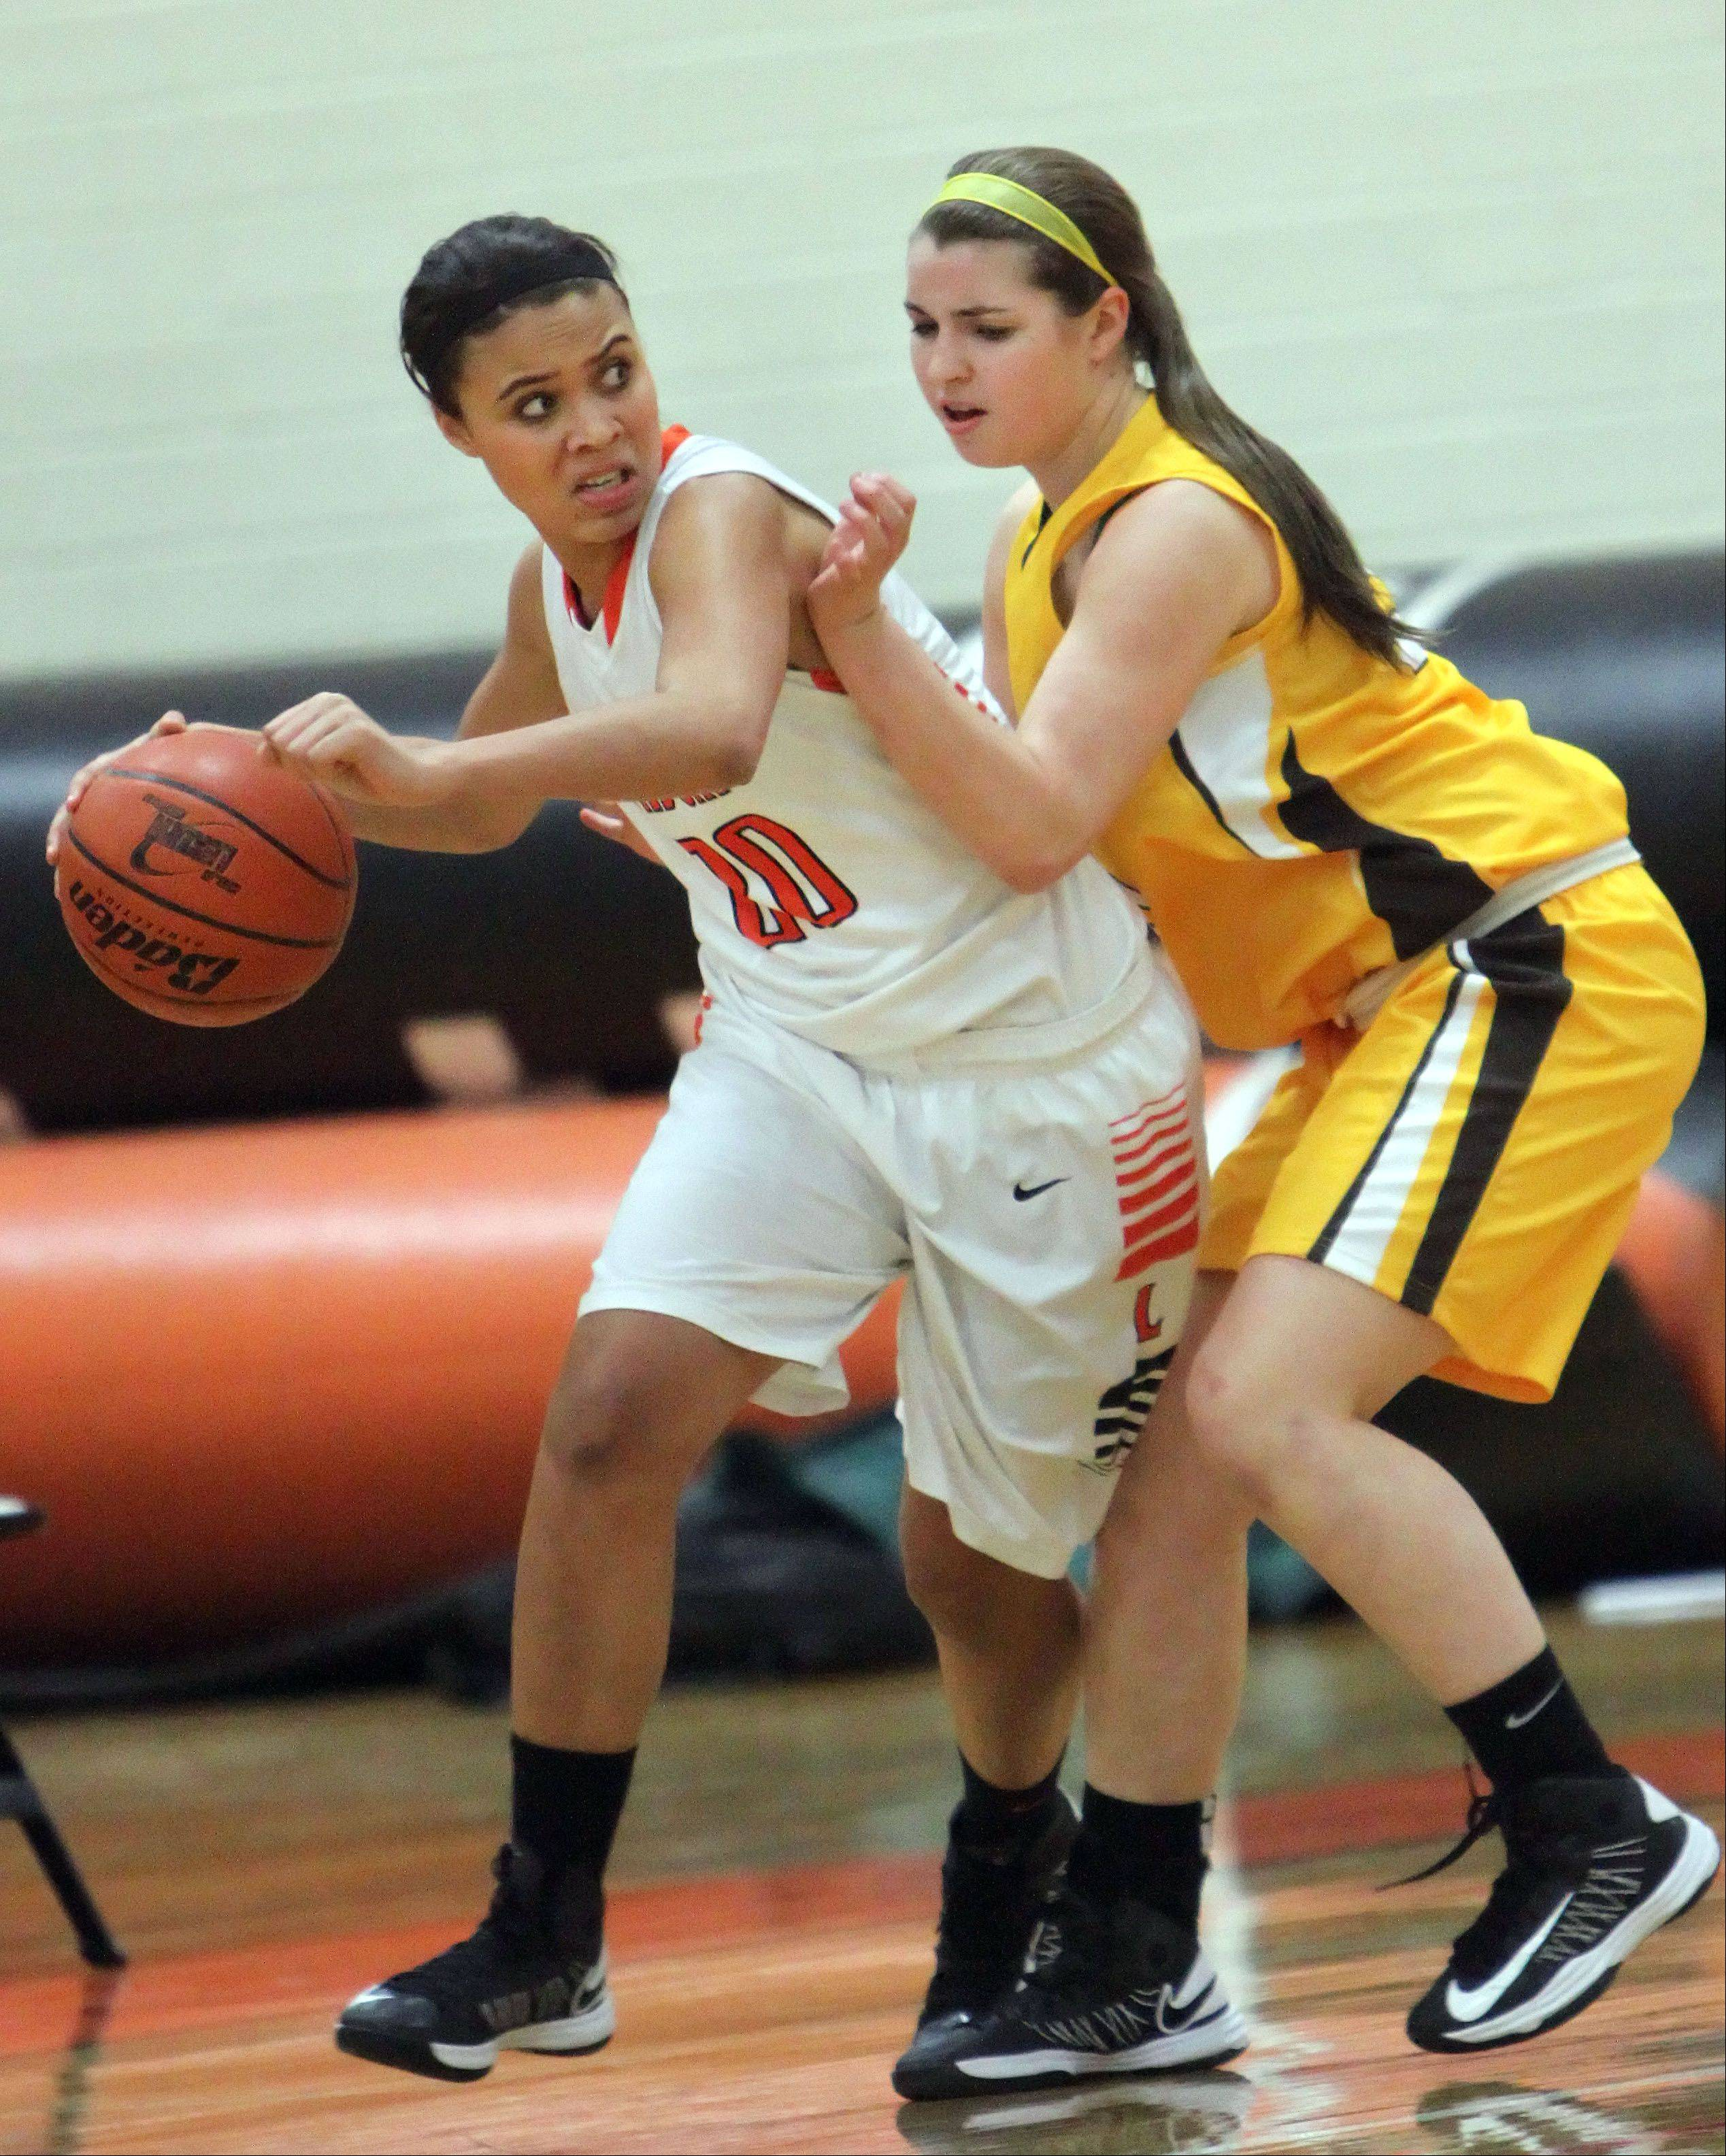 Libertyville's Jenna Slobodnik, left, drives on Carmel's Alexa Svoboda.